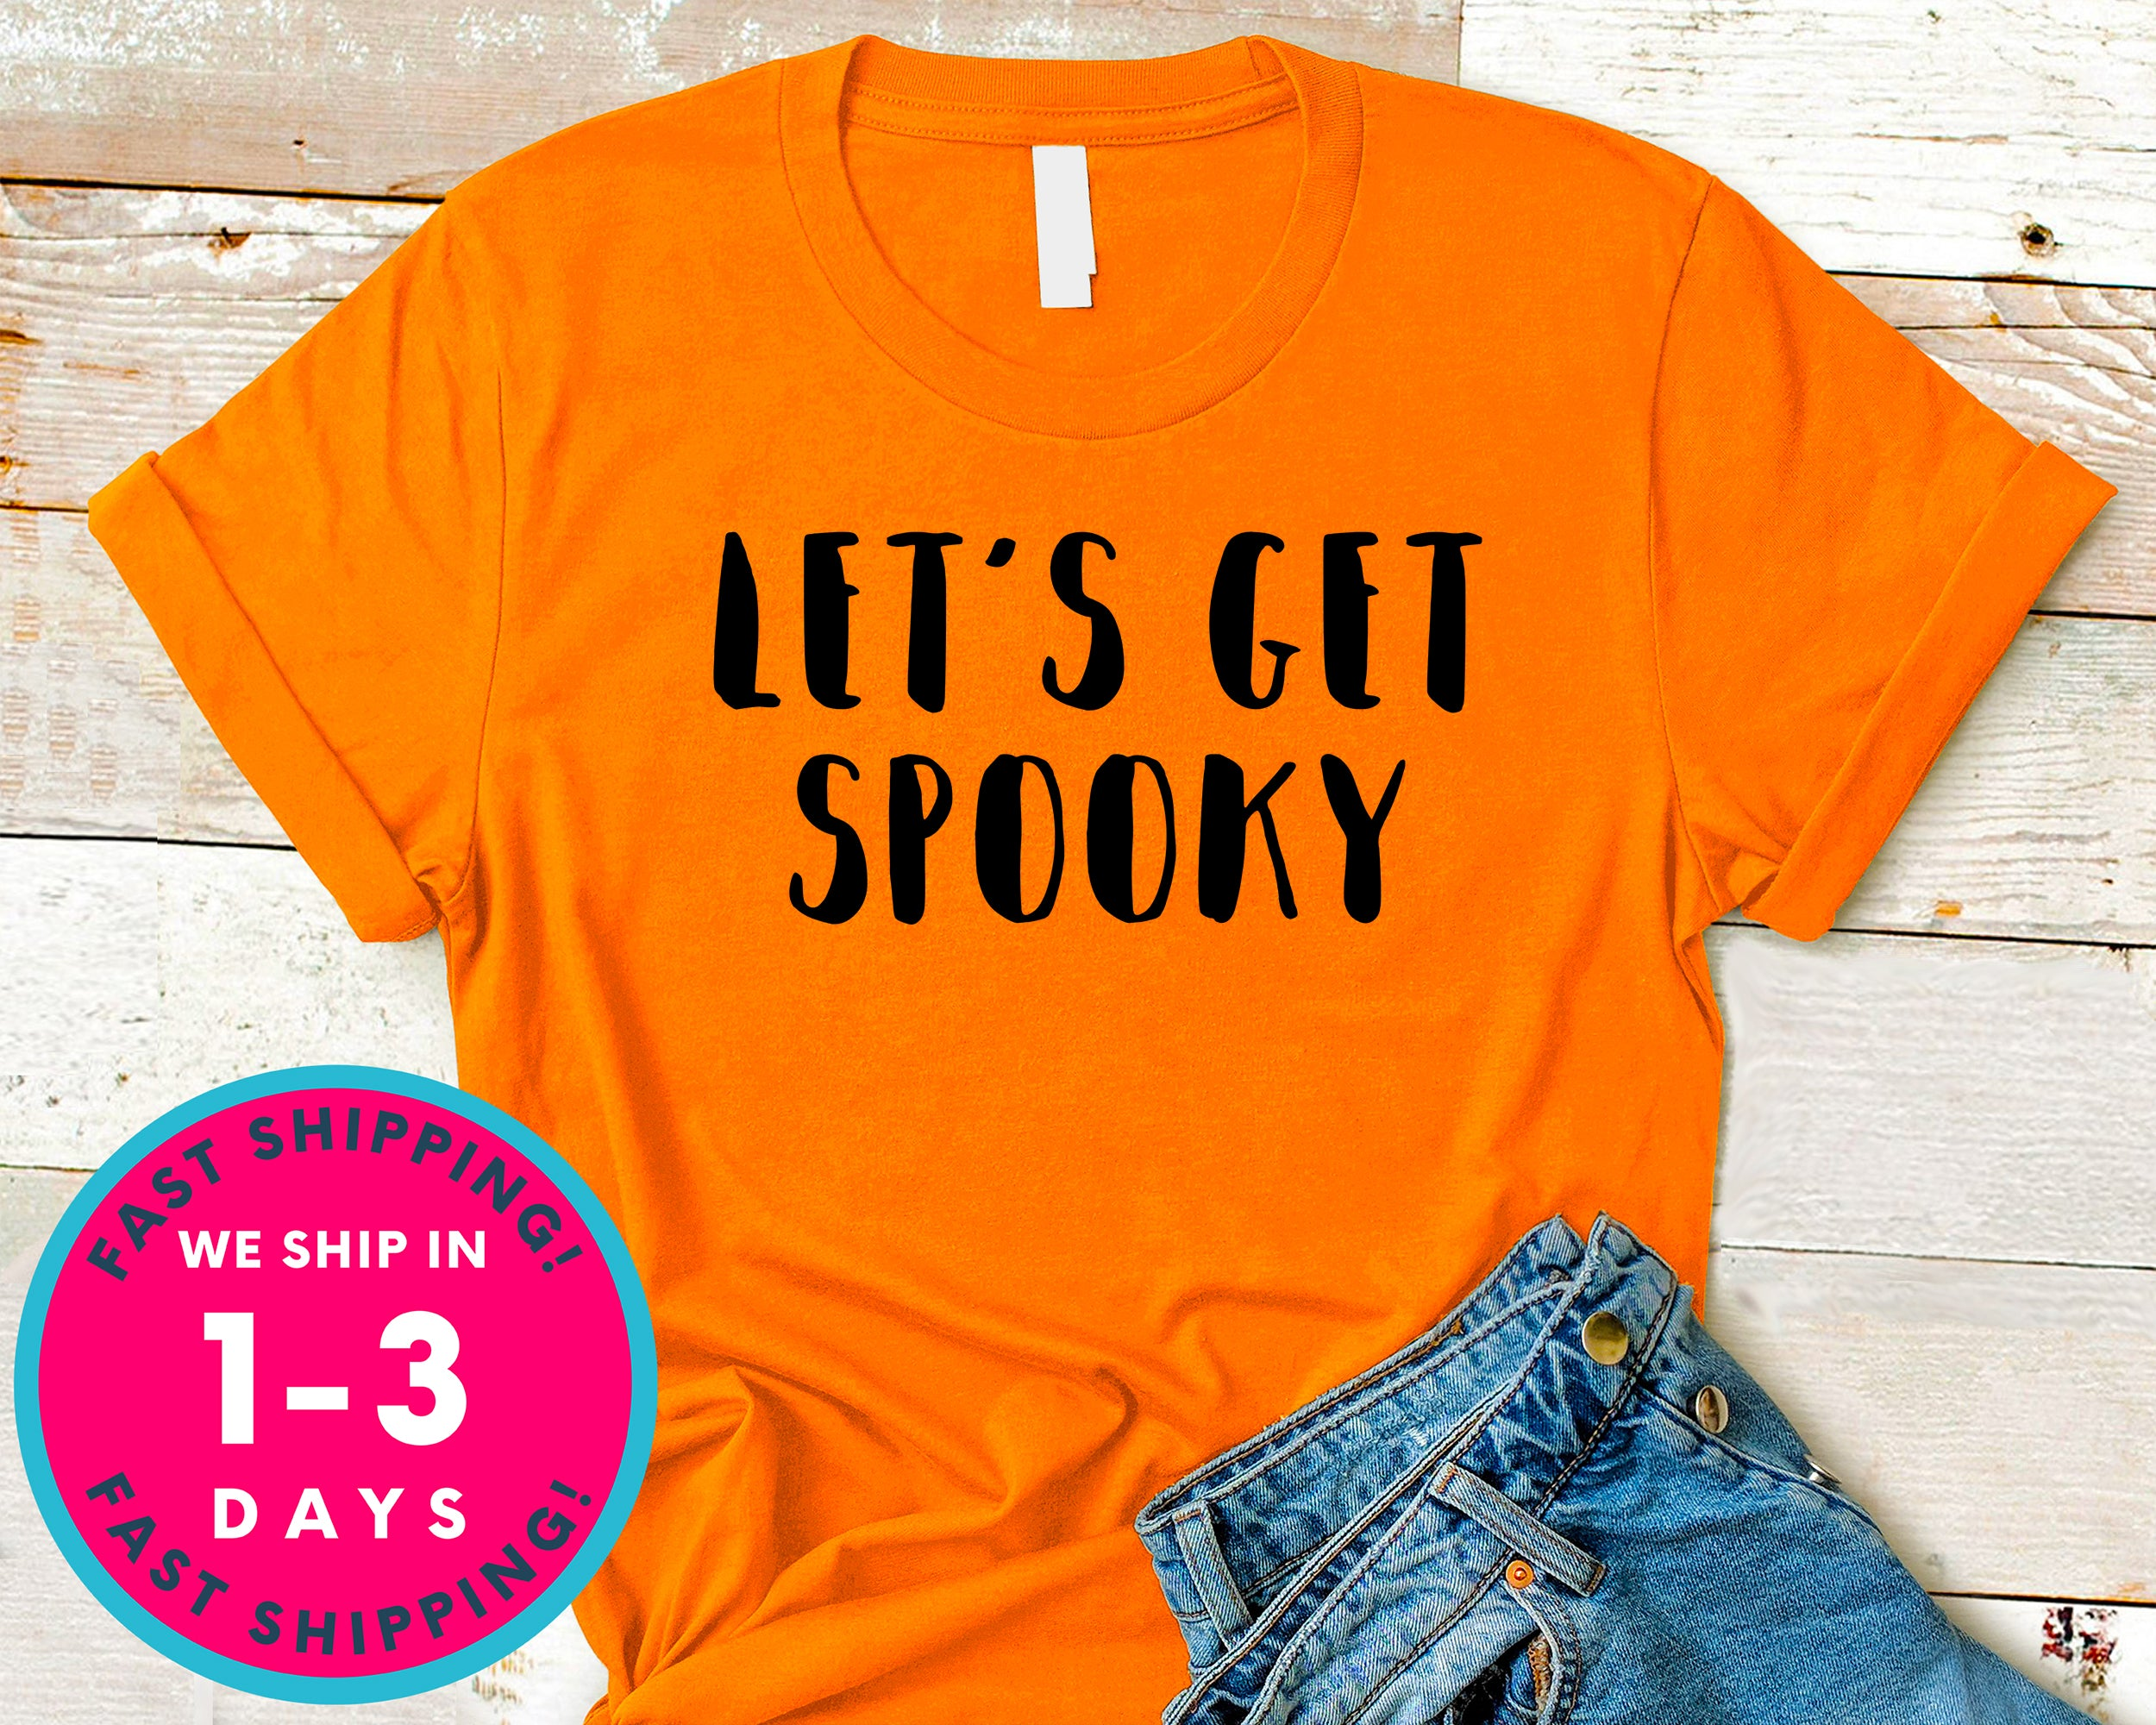 Let's Get Spooky T-Shirt - Halloween Horror Scary Shirt